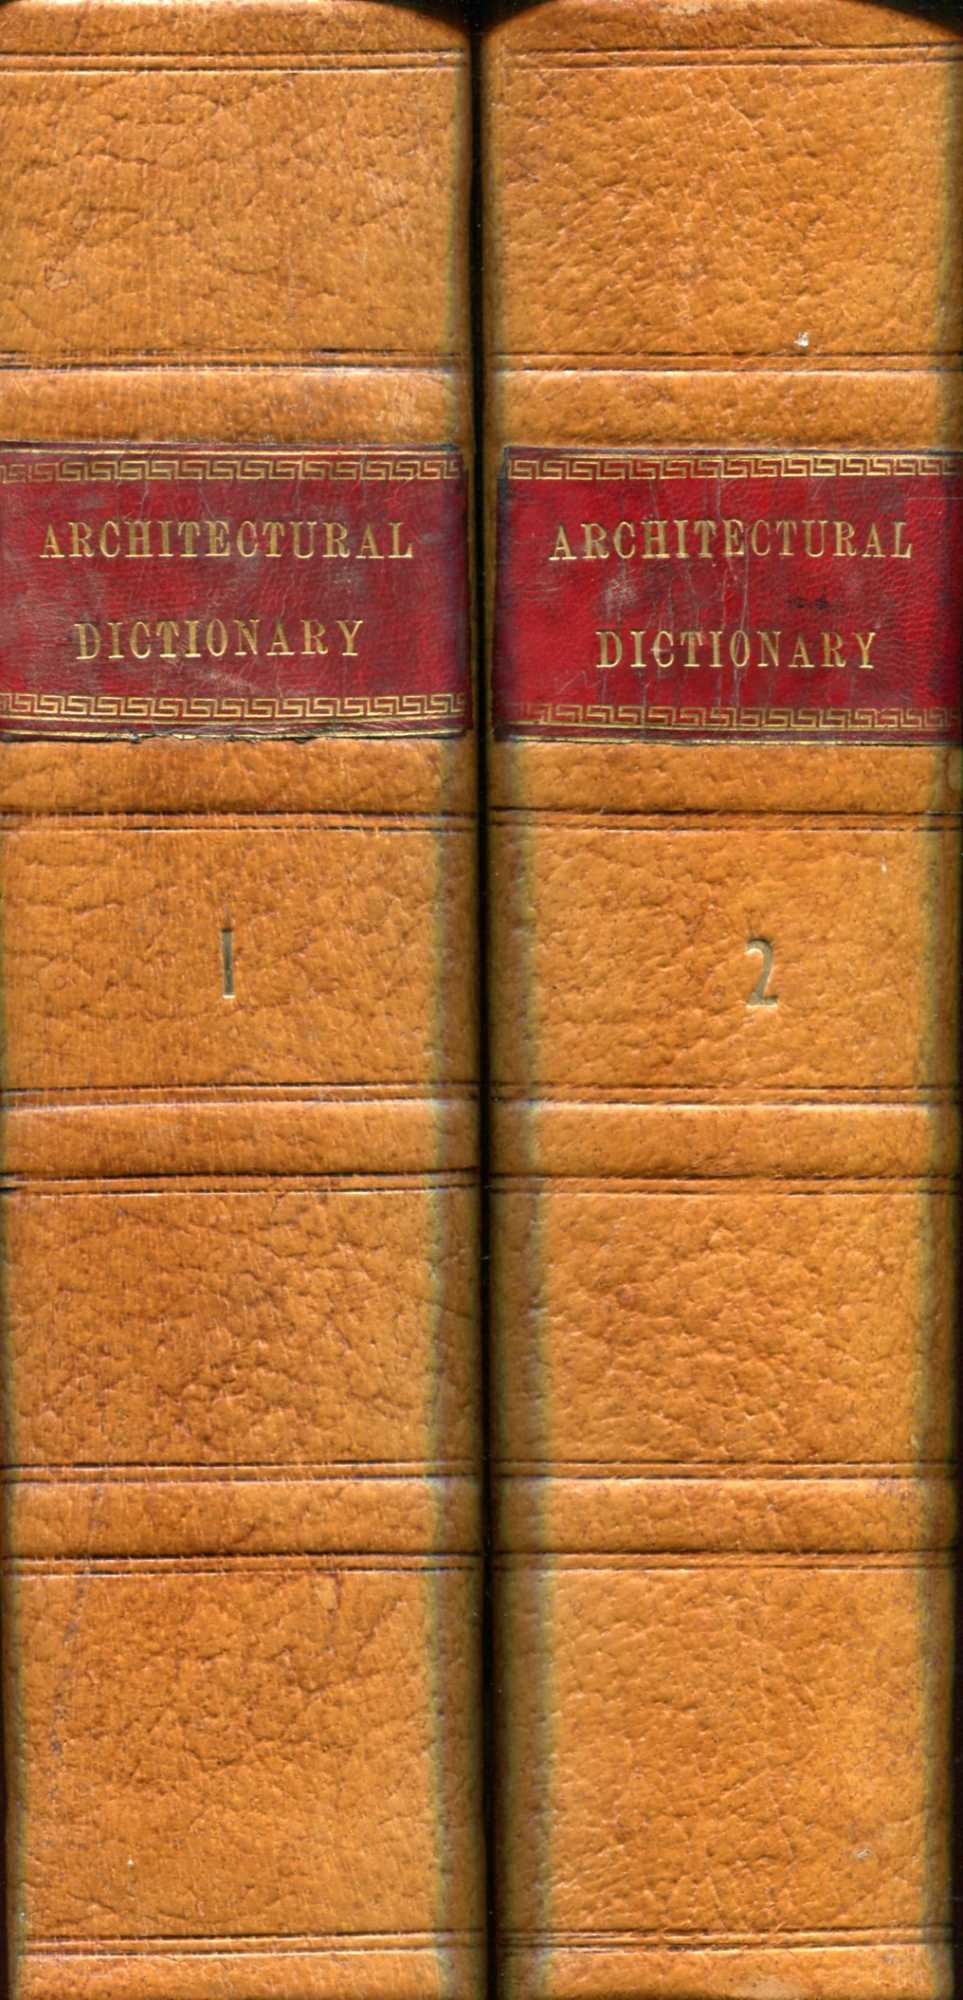 Image for An Architectural Dictionary, containing a correct nomenclature and derivation of the Terms employed by Architects, Builders and Workmen (two volumes complete)